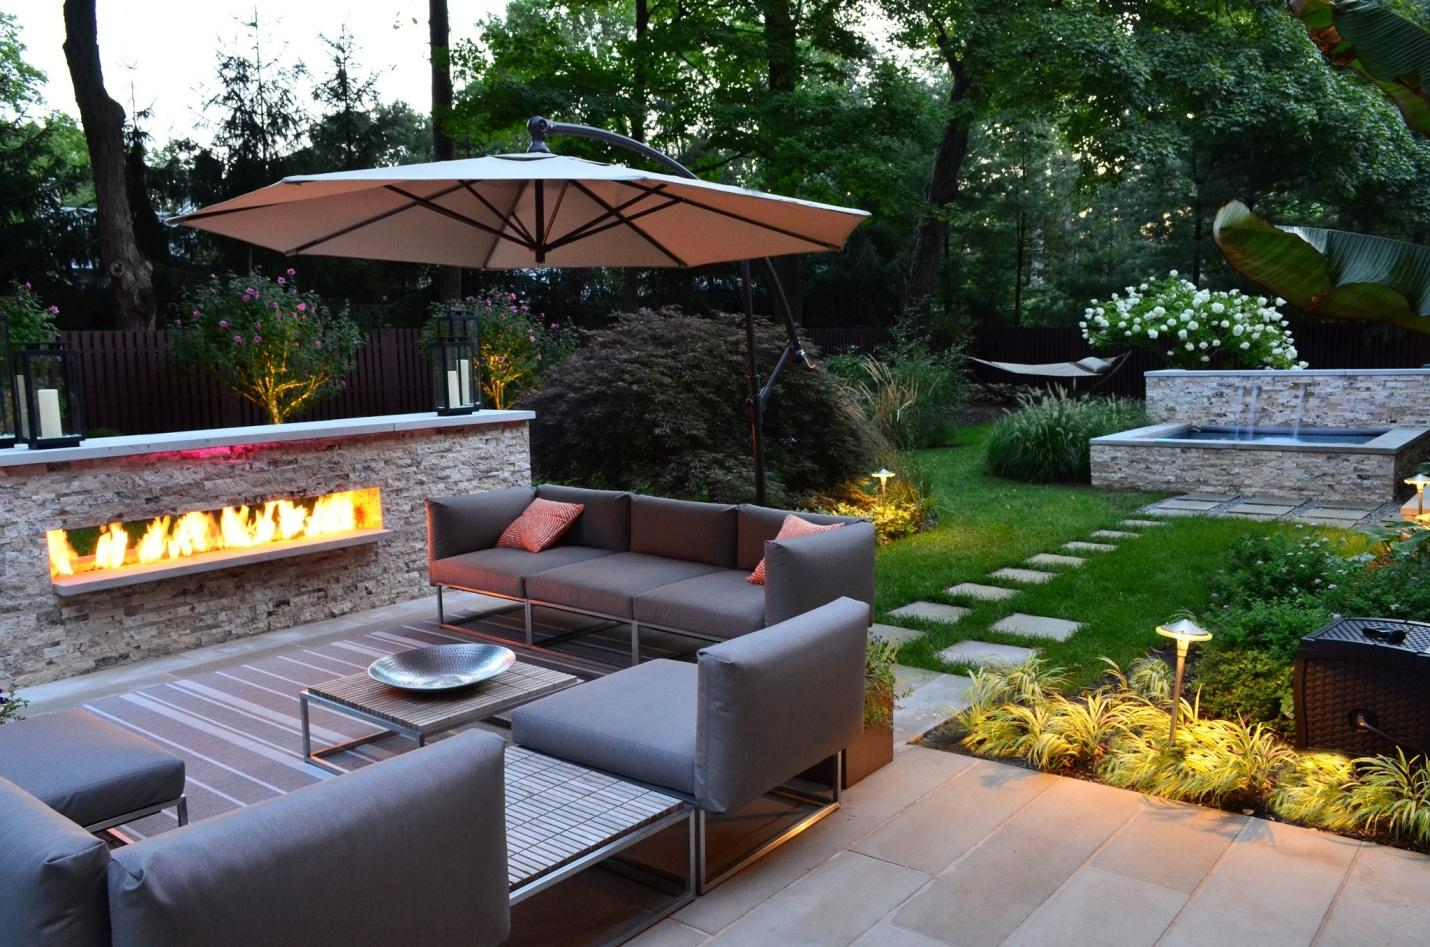 Unlock the Secrets of Custom, Innovative, and Creative Outdoor Living